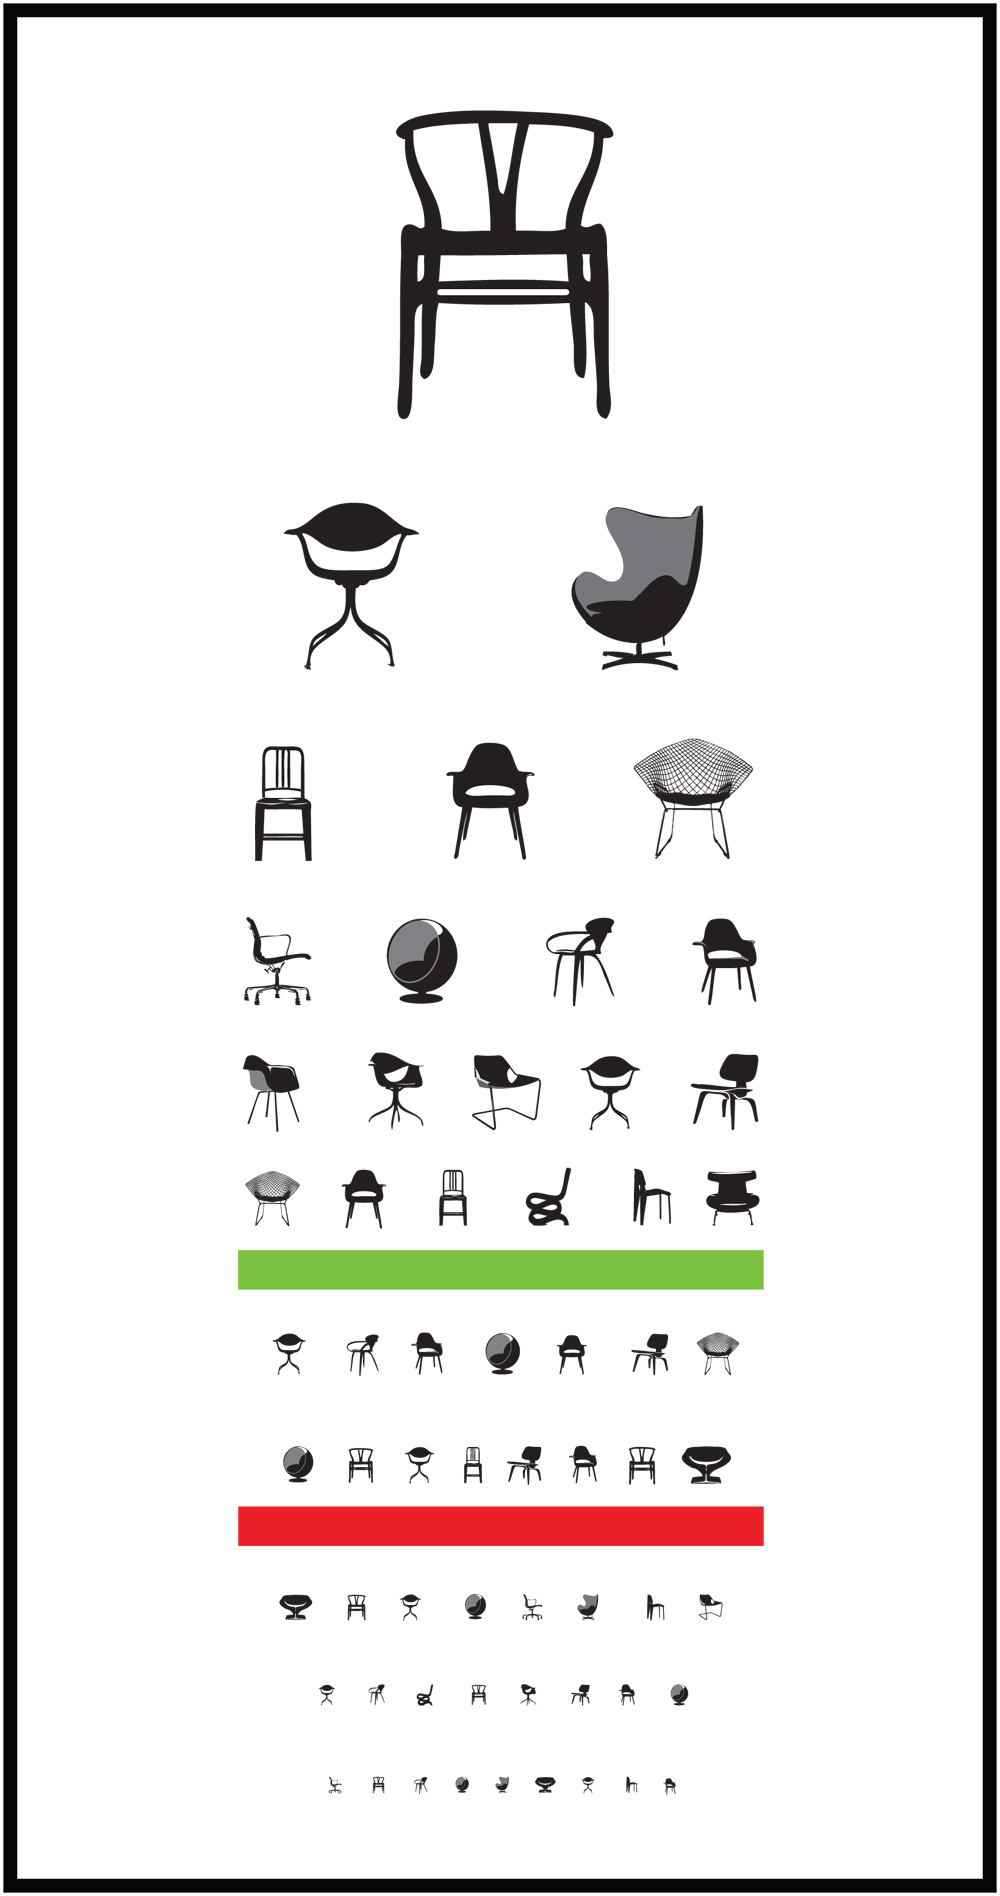 Poster design for quiz - Chairs Small